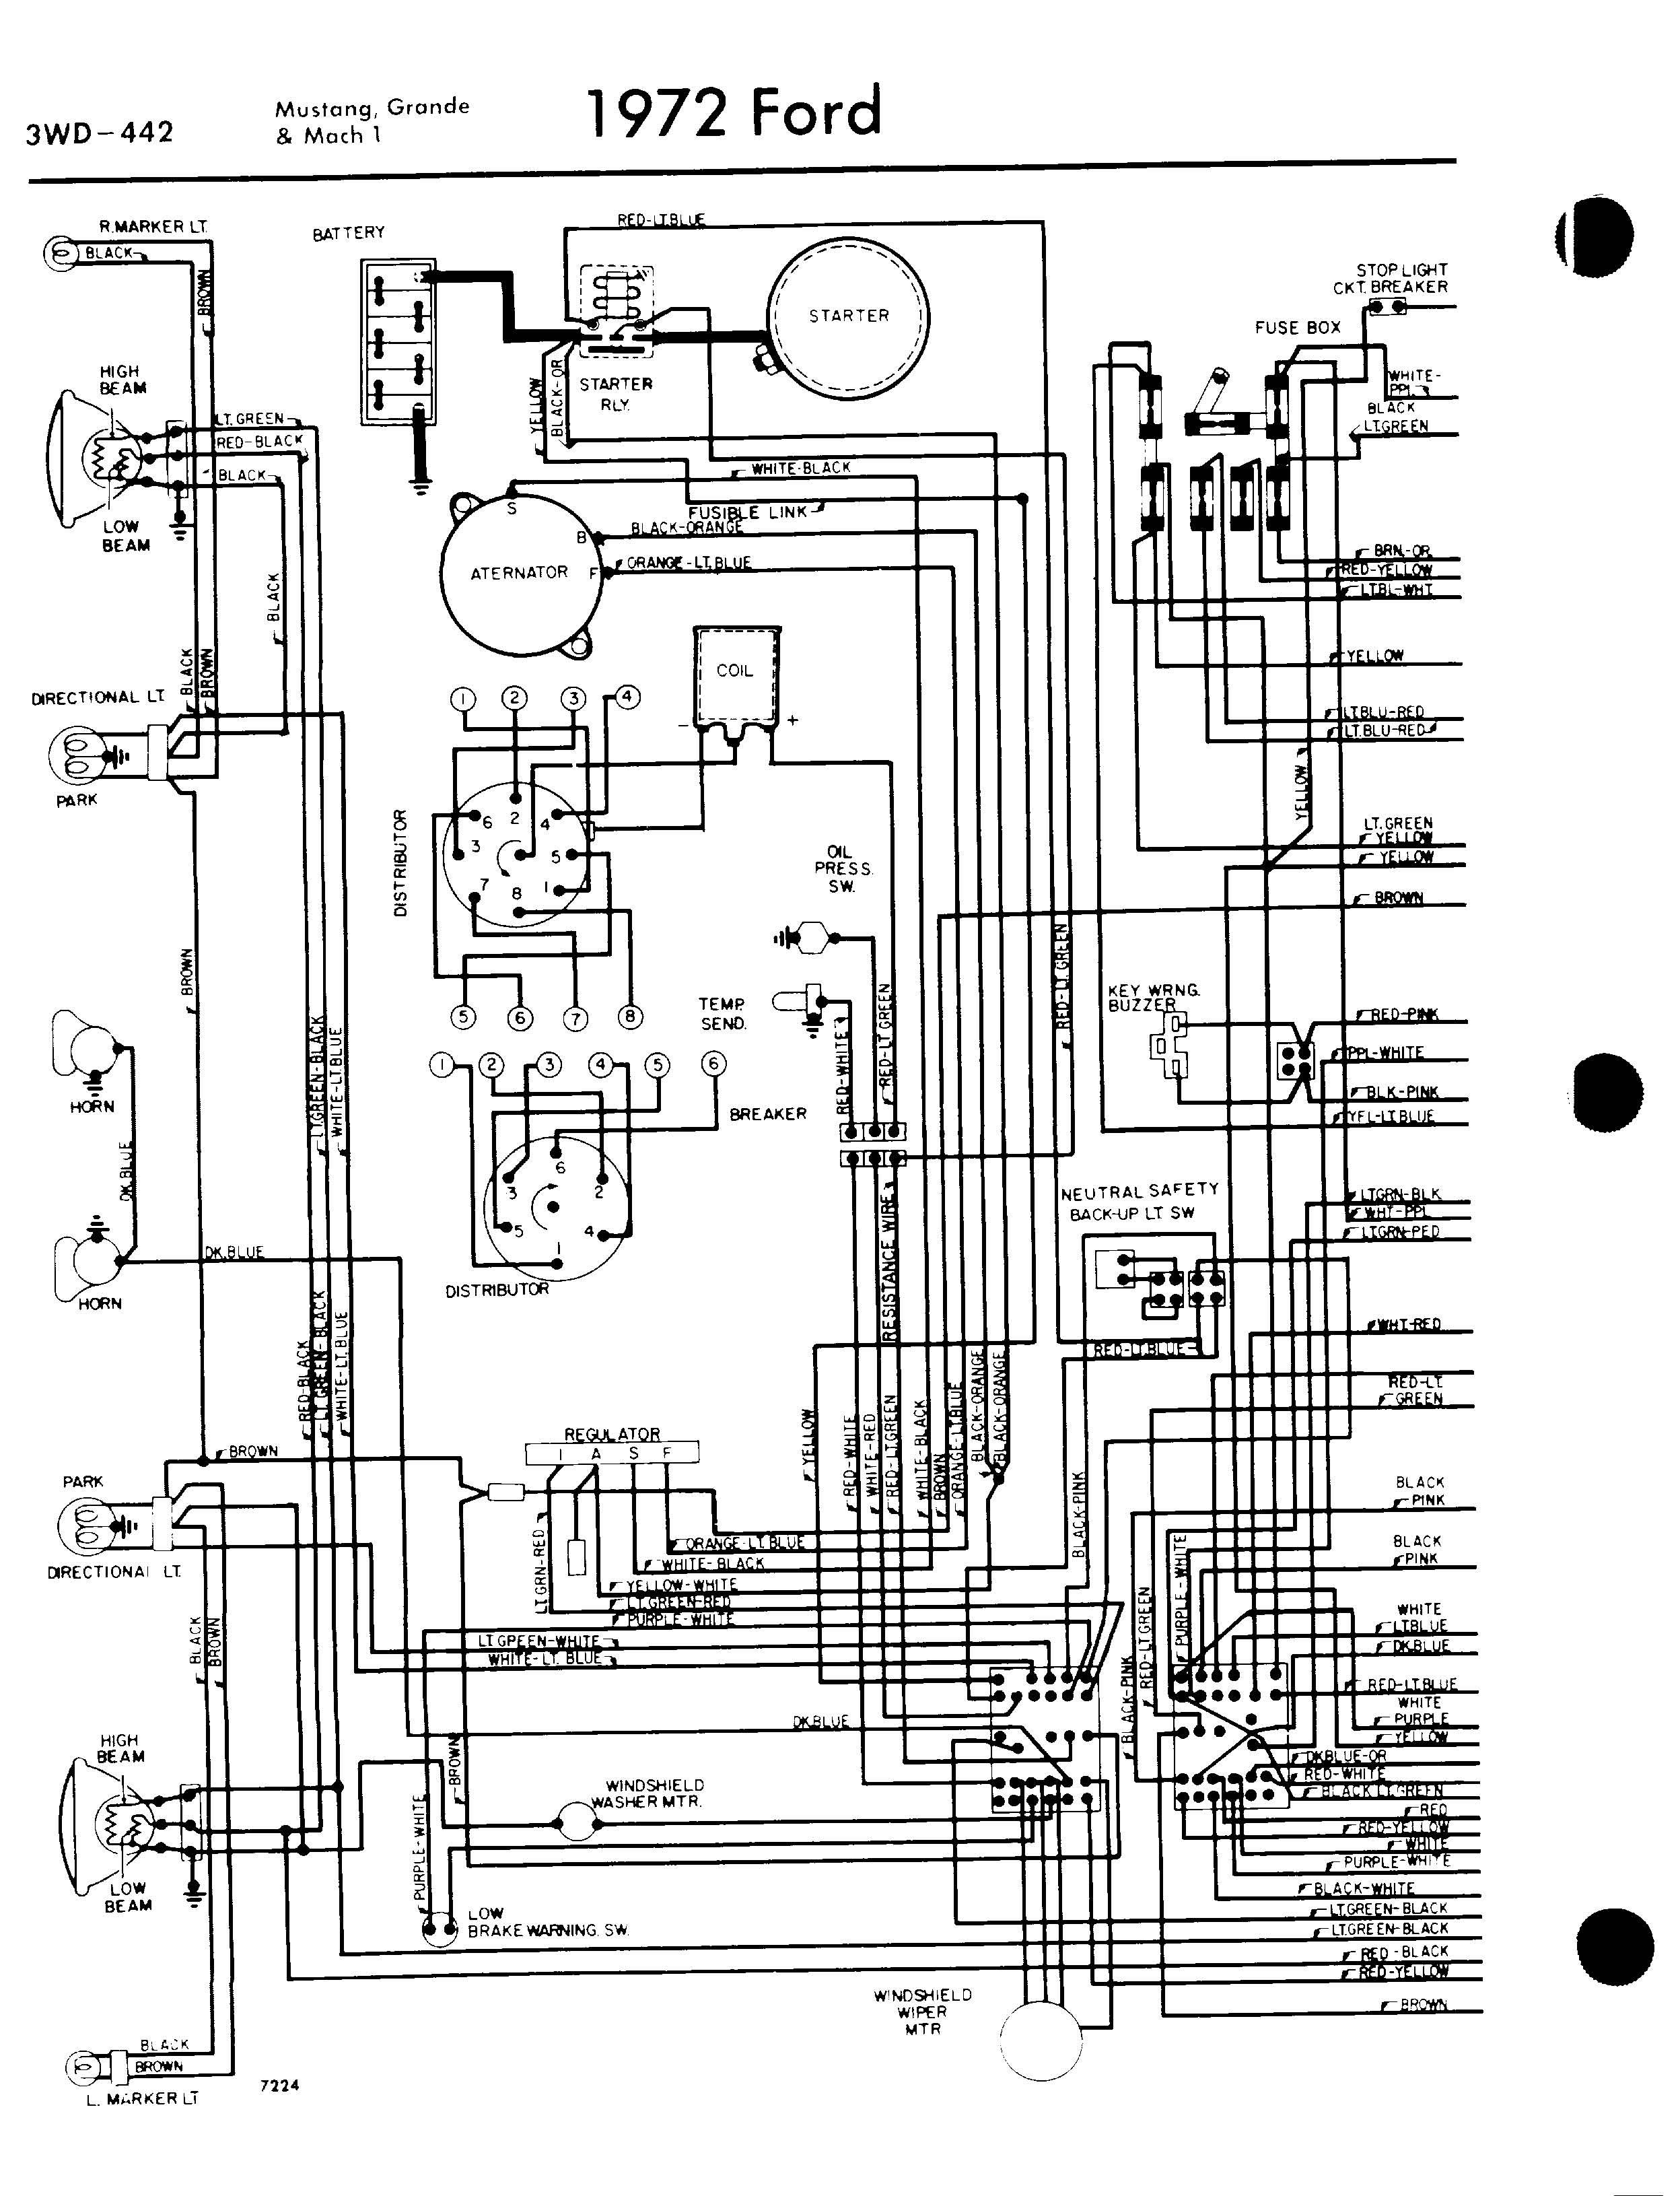 72 ford alternator wiring diagram today diagram database  1972 ford regulator wiring diagram #13